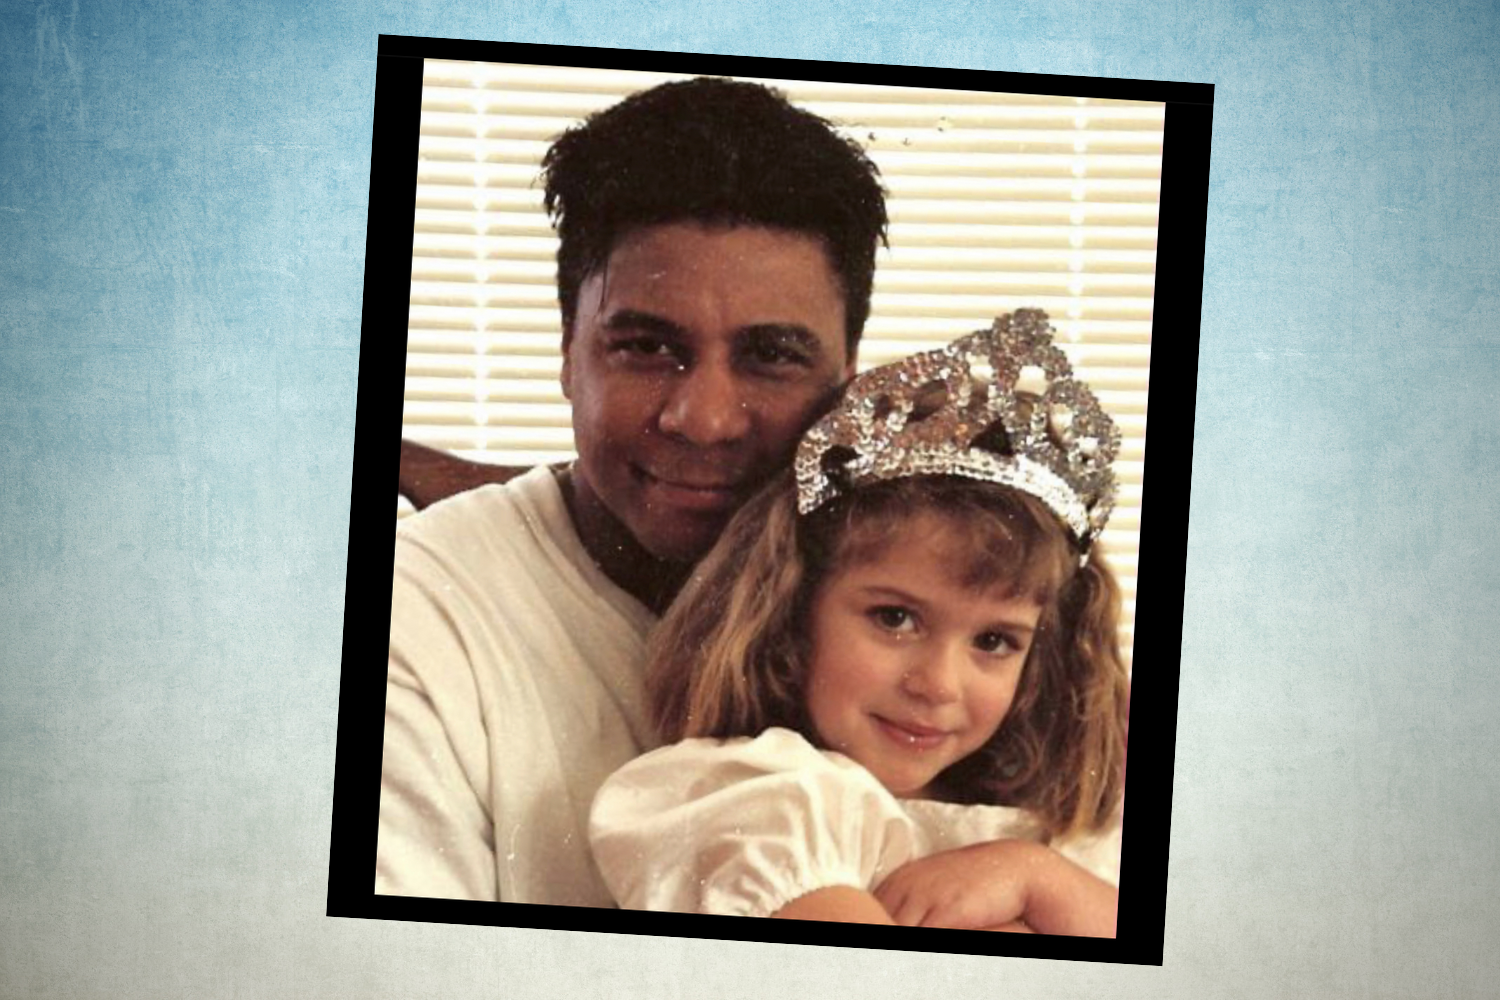 A Polaroid-looking portrait of a Black man with short hair hugging a child with shoulder-length hair and wearing a tiara.